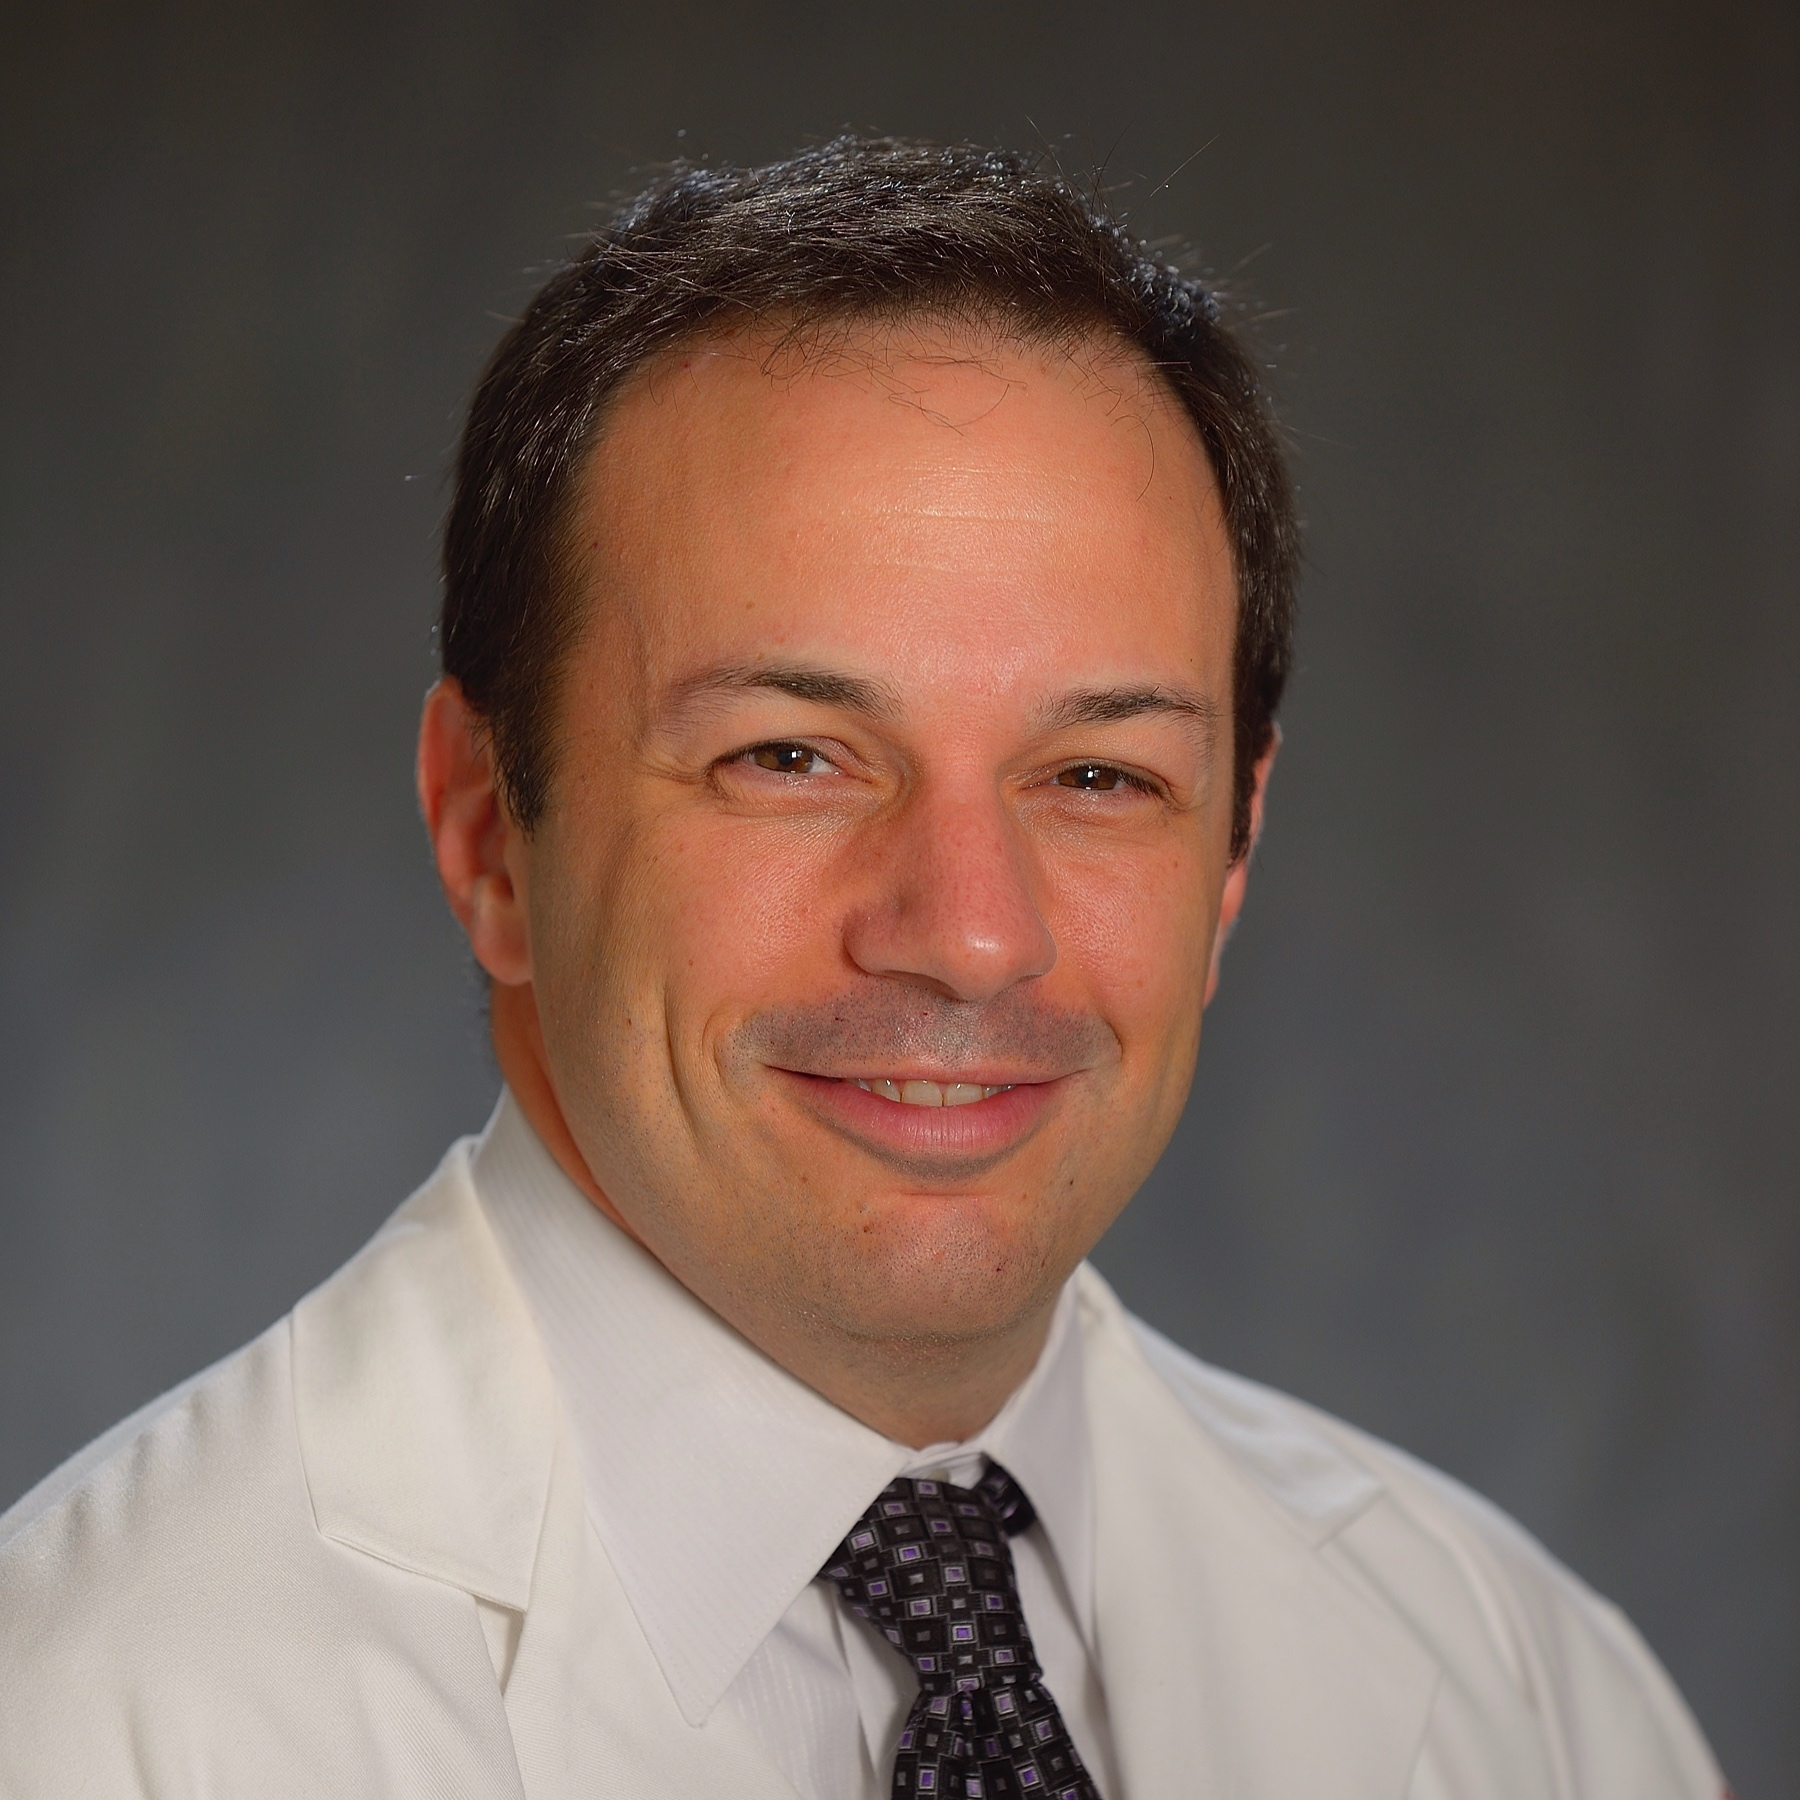 Benjamin S. Abella, MD MPhil   Professor and Vice Chair for Research  Director, Center for Resuscitation Science  Department of Emergency Medicine  Perelman School of Medicine  University of Pennsylvania